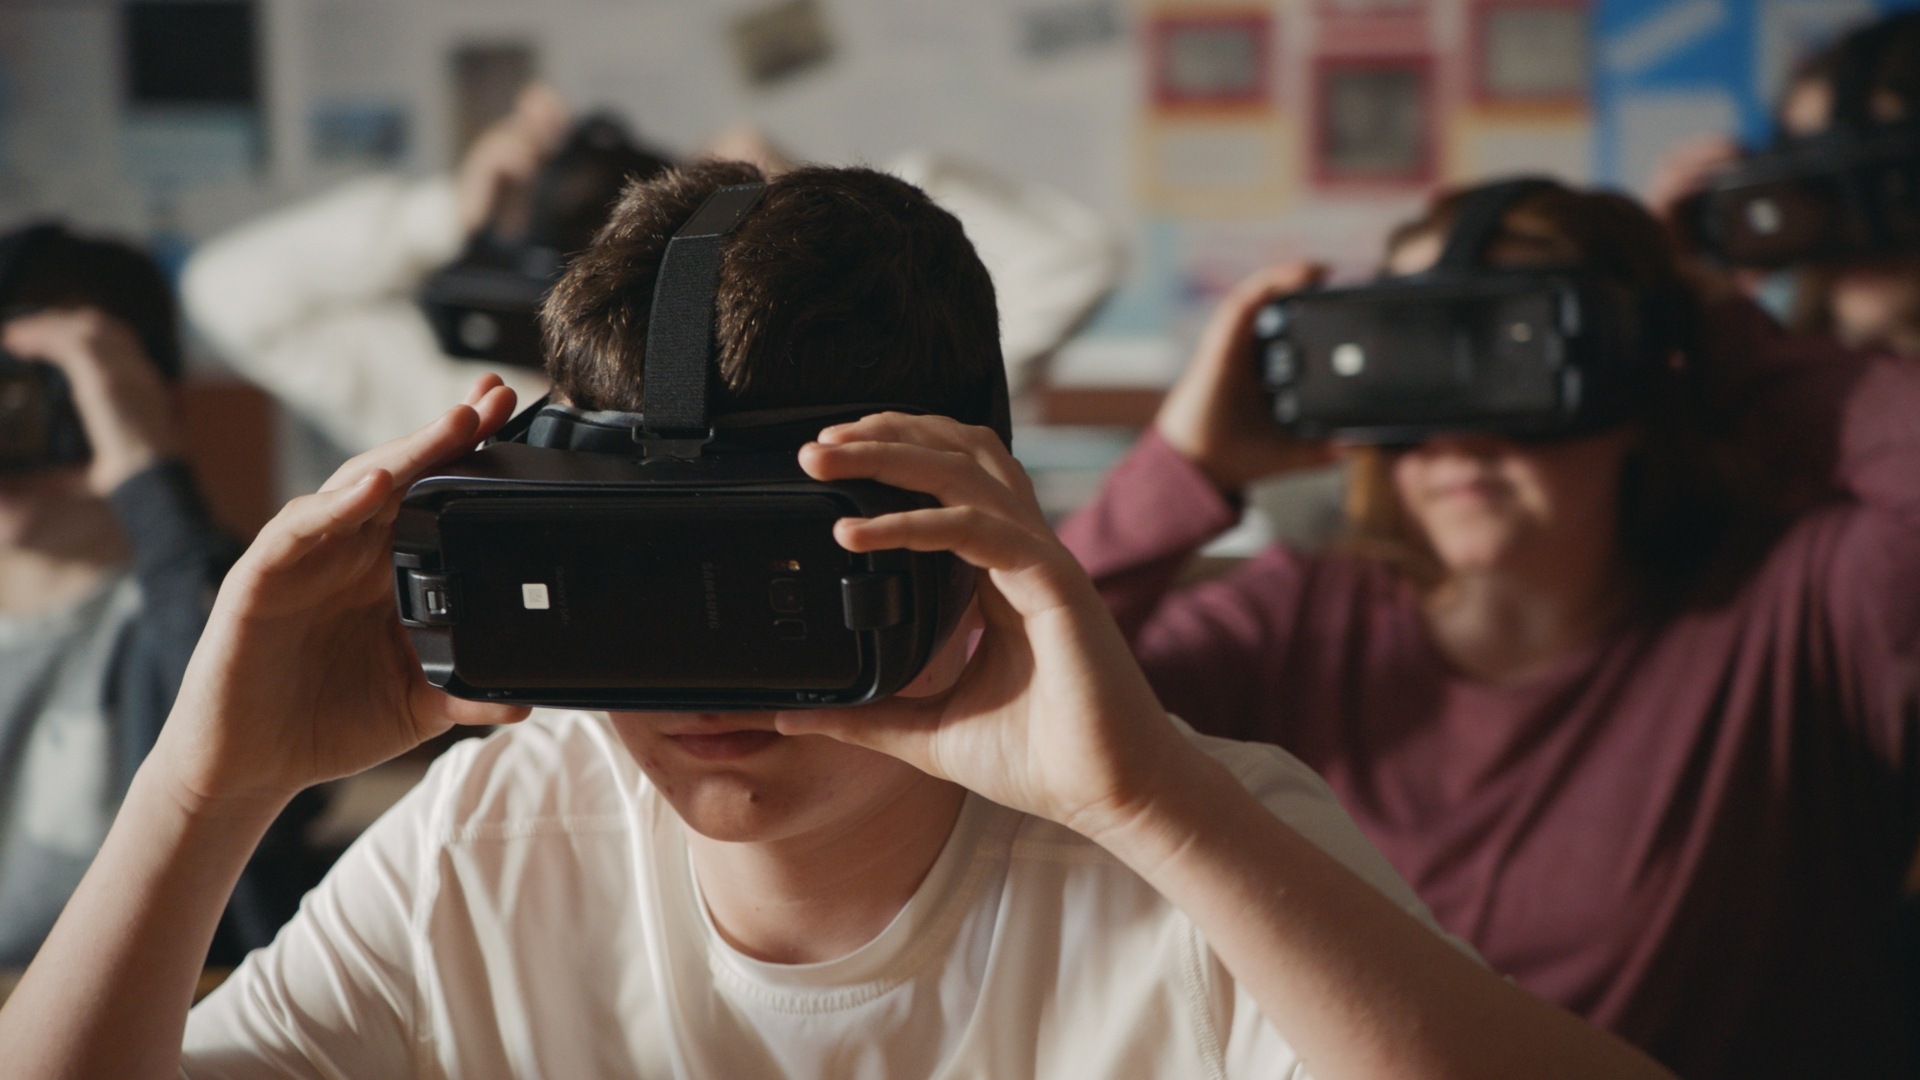 Humanability education imagery VR